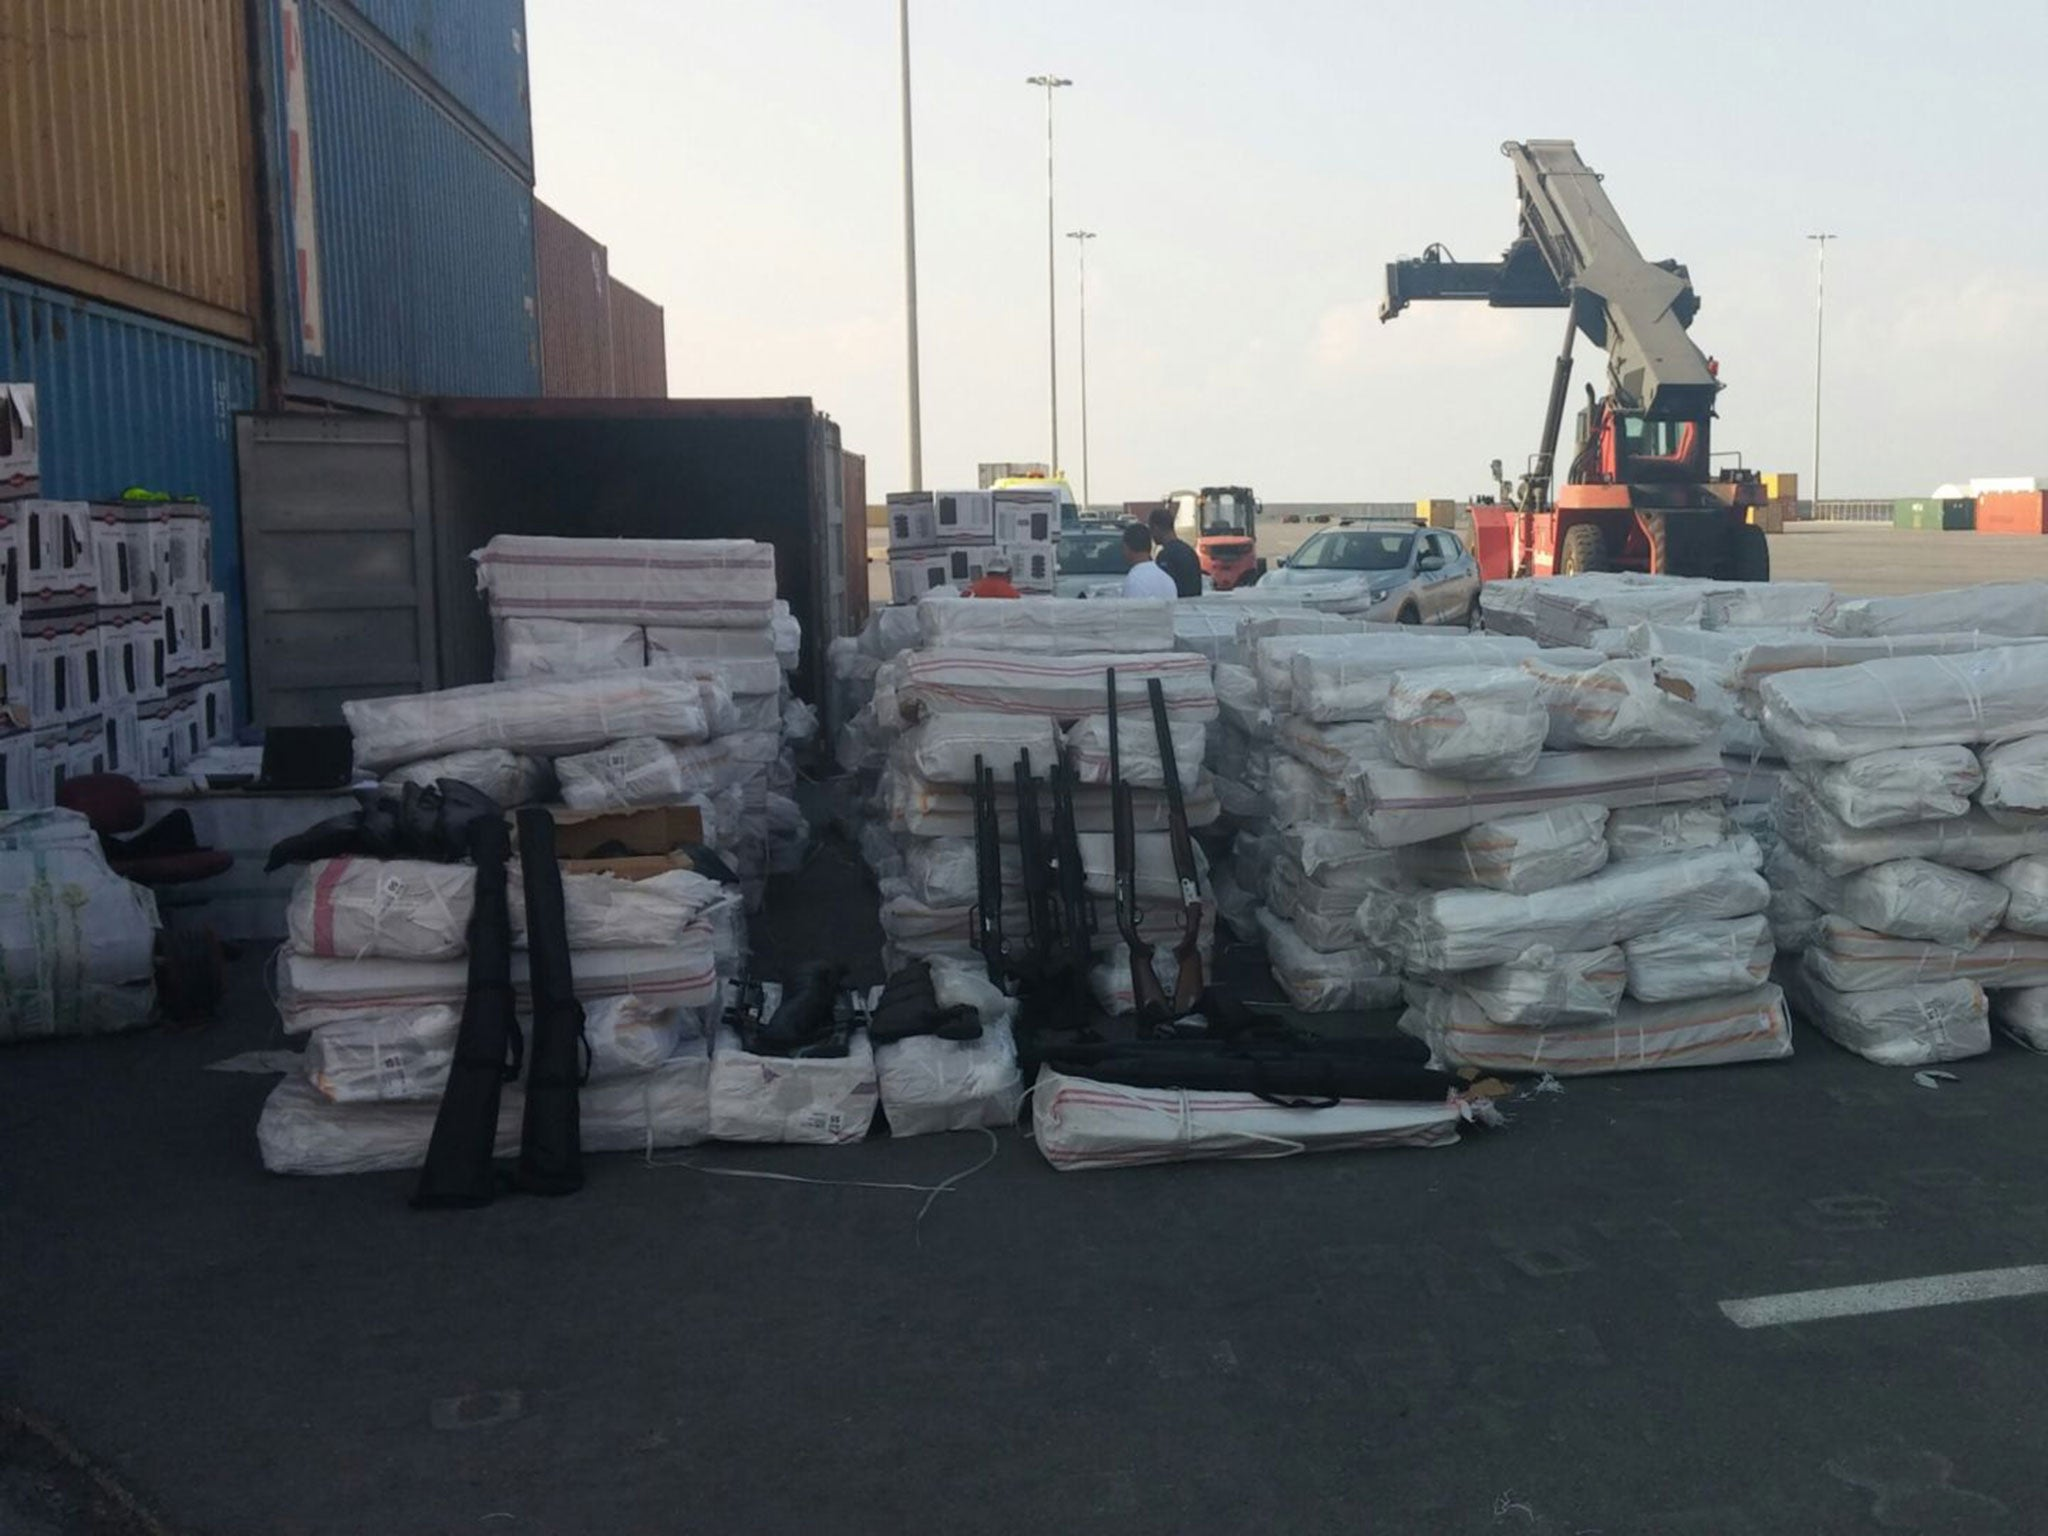 Coastguards seize huge stash of arms and ammo 'bound for Libya'